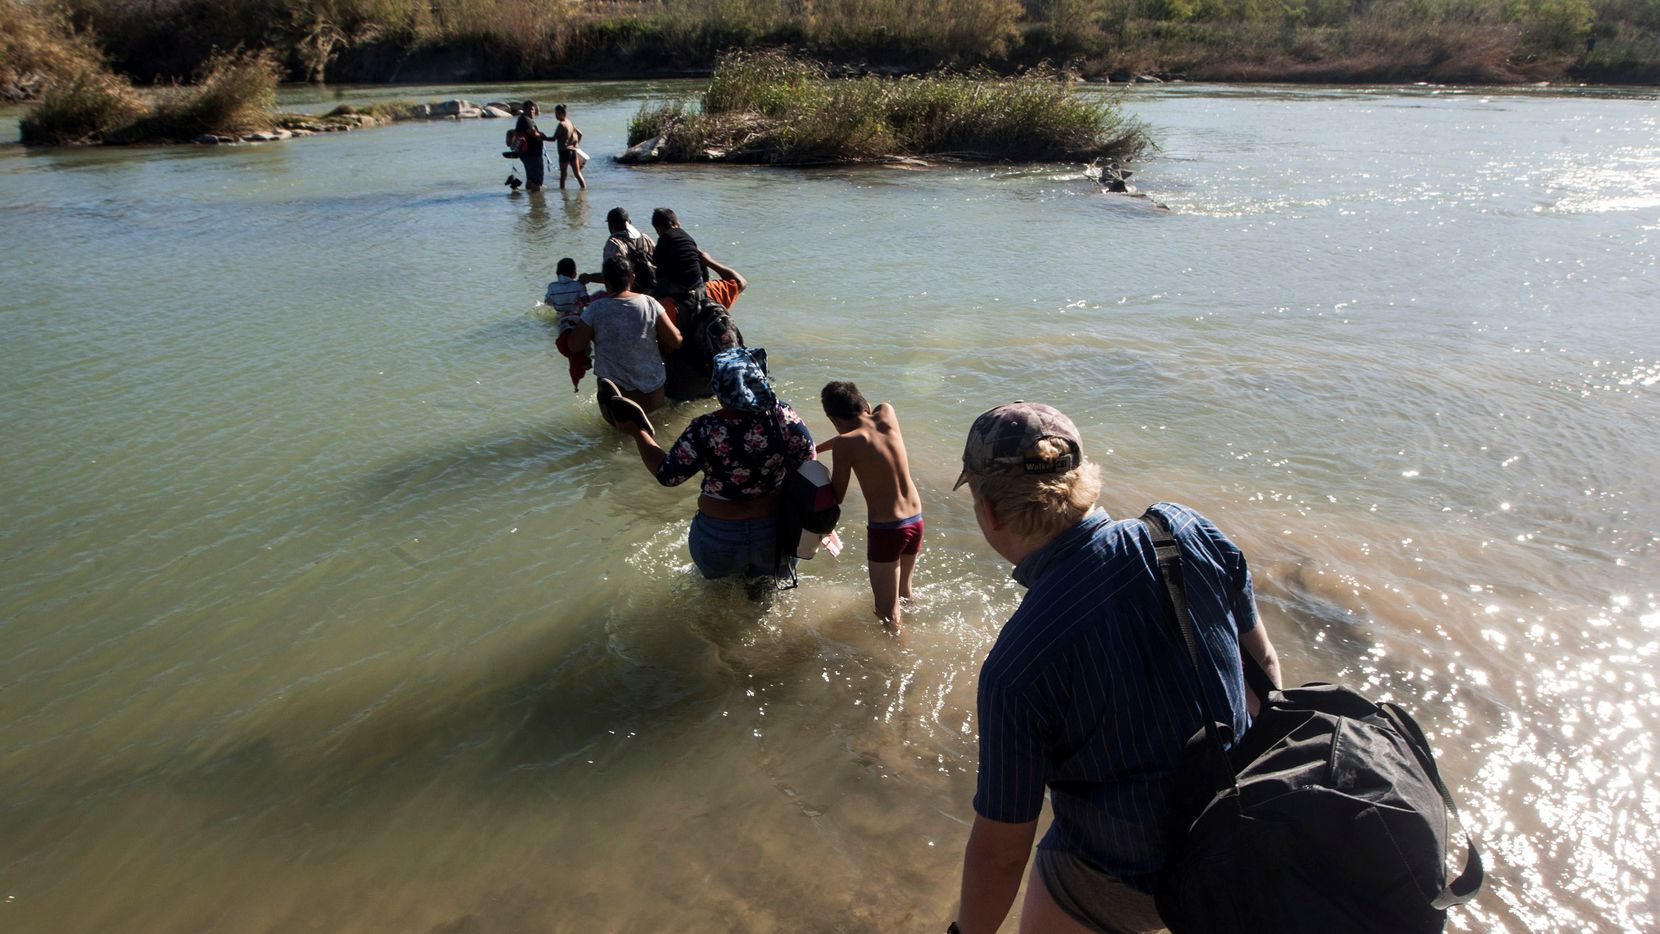 In this 2019 photo, Central American migrants try to cross the Rio Bravo from Piedras Negras, in Coahuila state, Mexico, to the city of Eagle Pass. Unauthorized border crossings plunged from 945,000 in 2000 to 210,000 in 2016, according to the Center for Migration Studies.